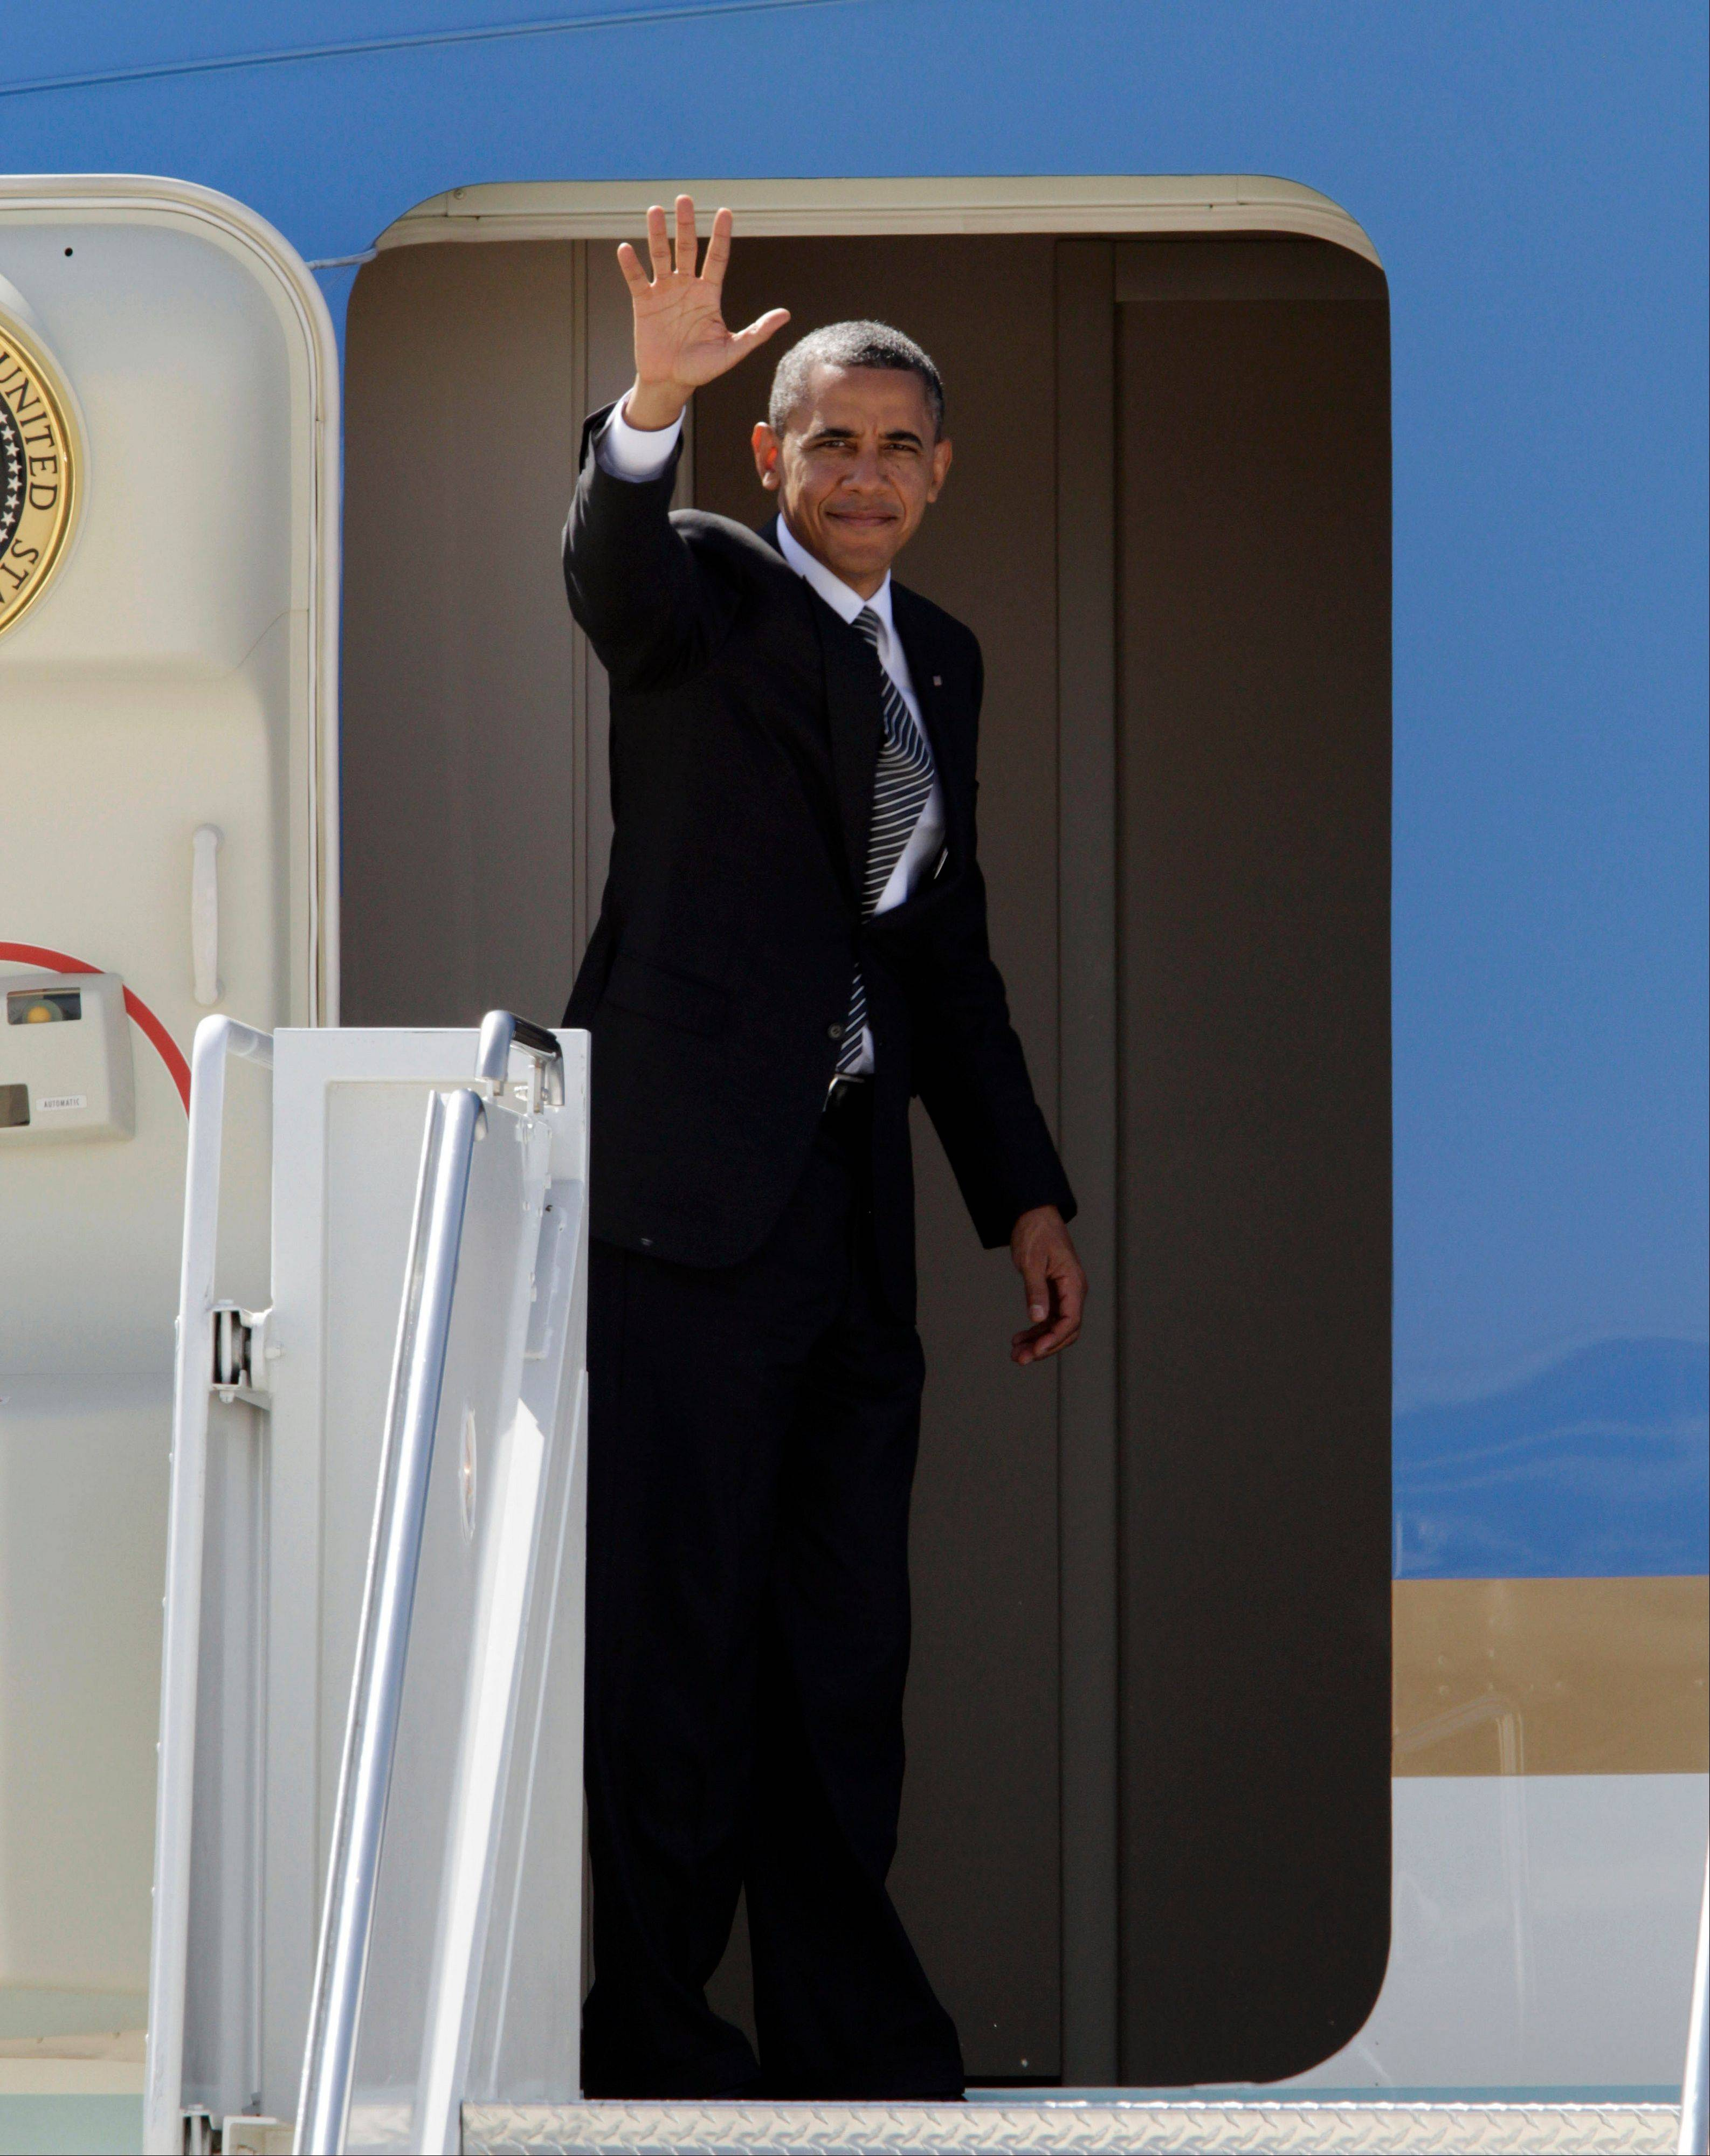 President Barack Obama waves from the door of Air Force One during his departure at the Meadows Field Airport in Bakersfield, Calif., Monday, Oct. 8, 2012.